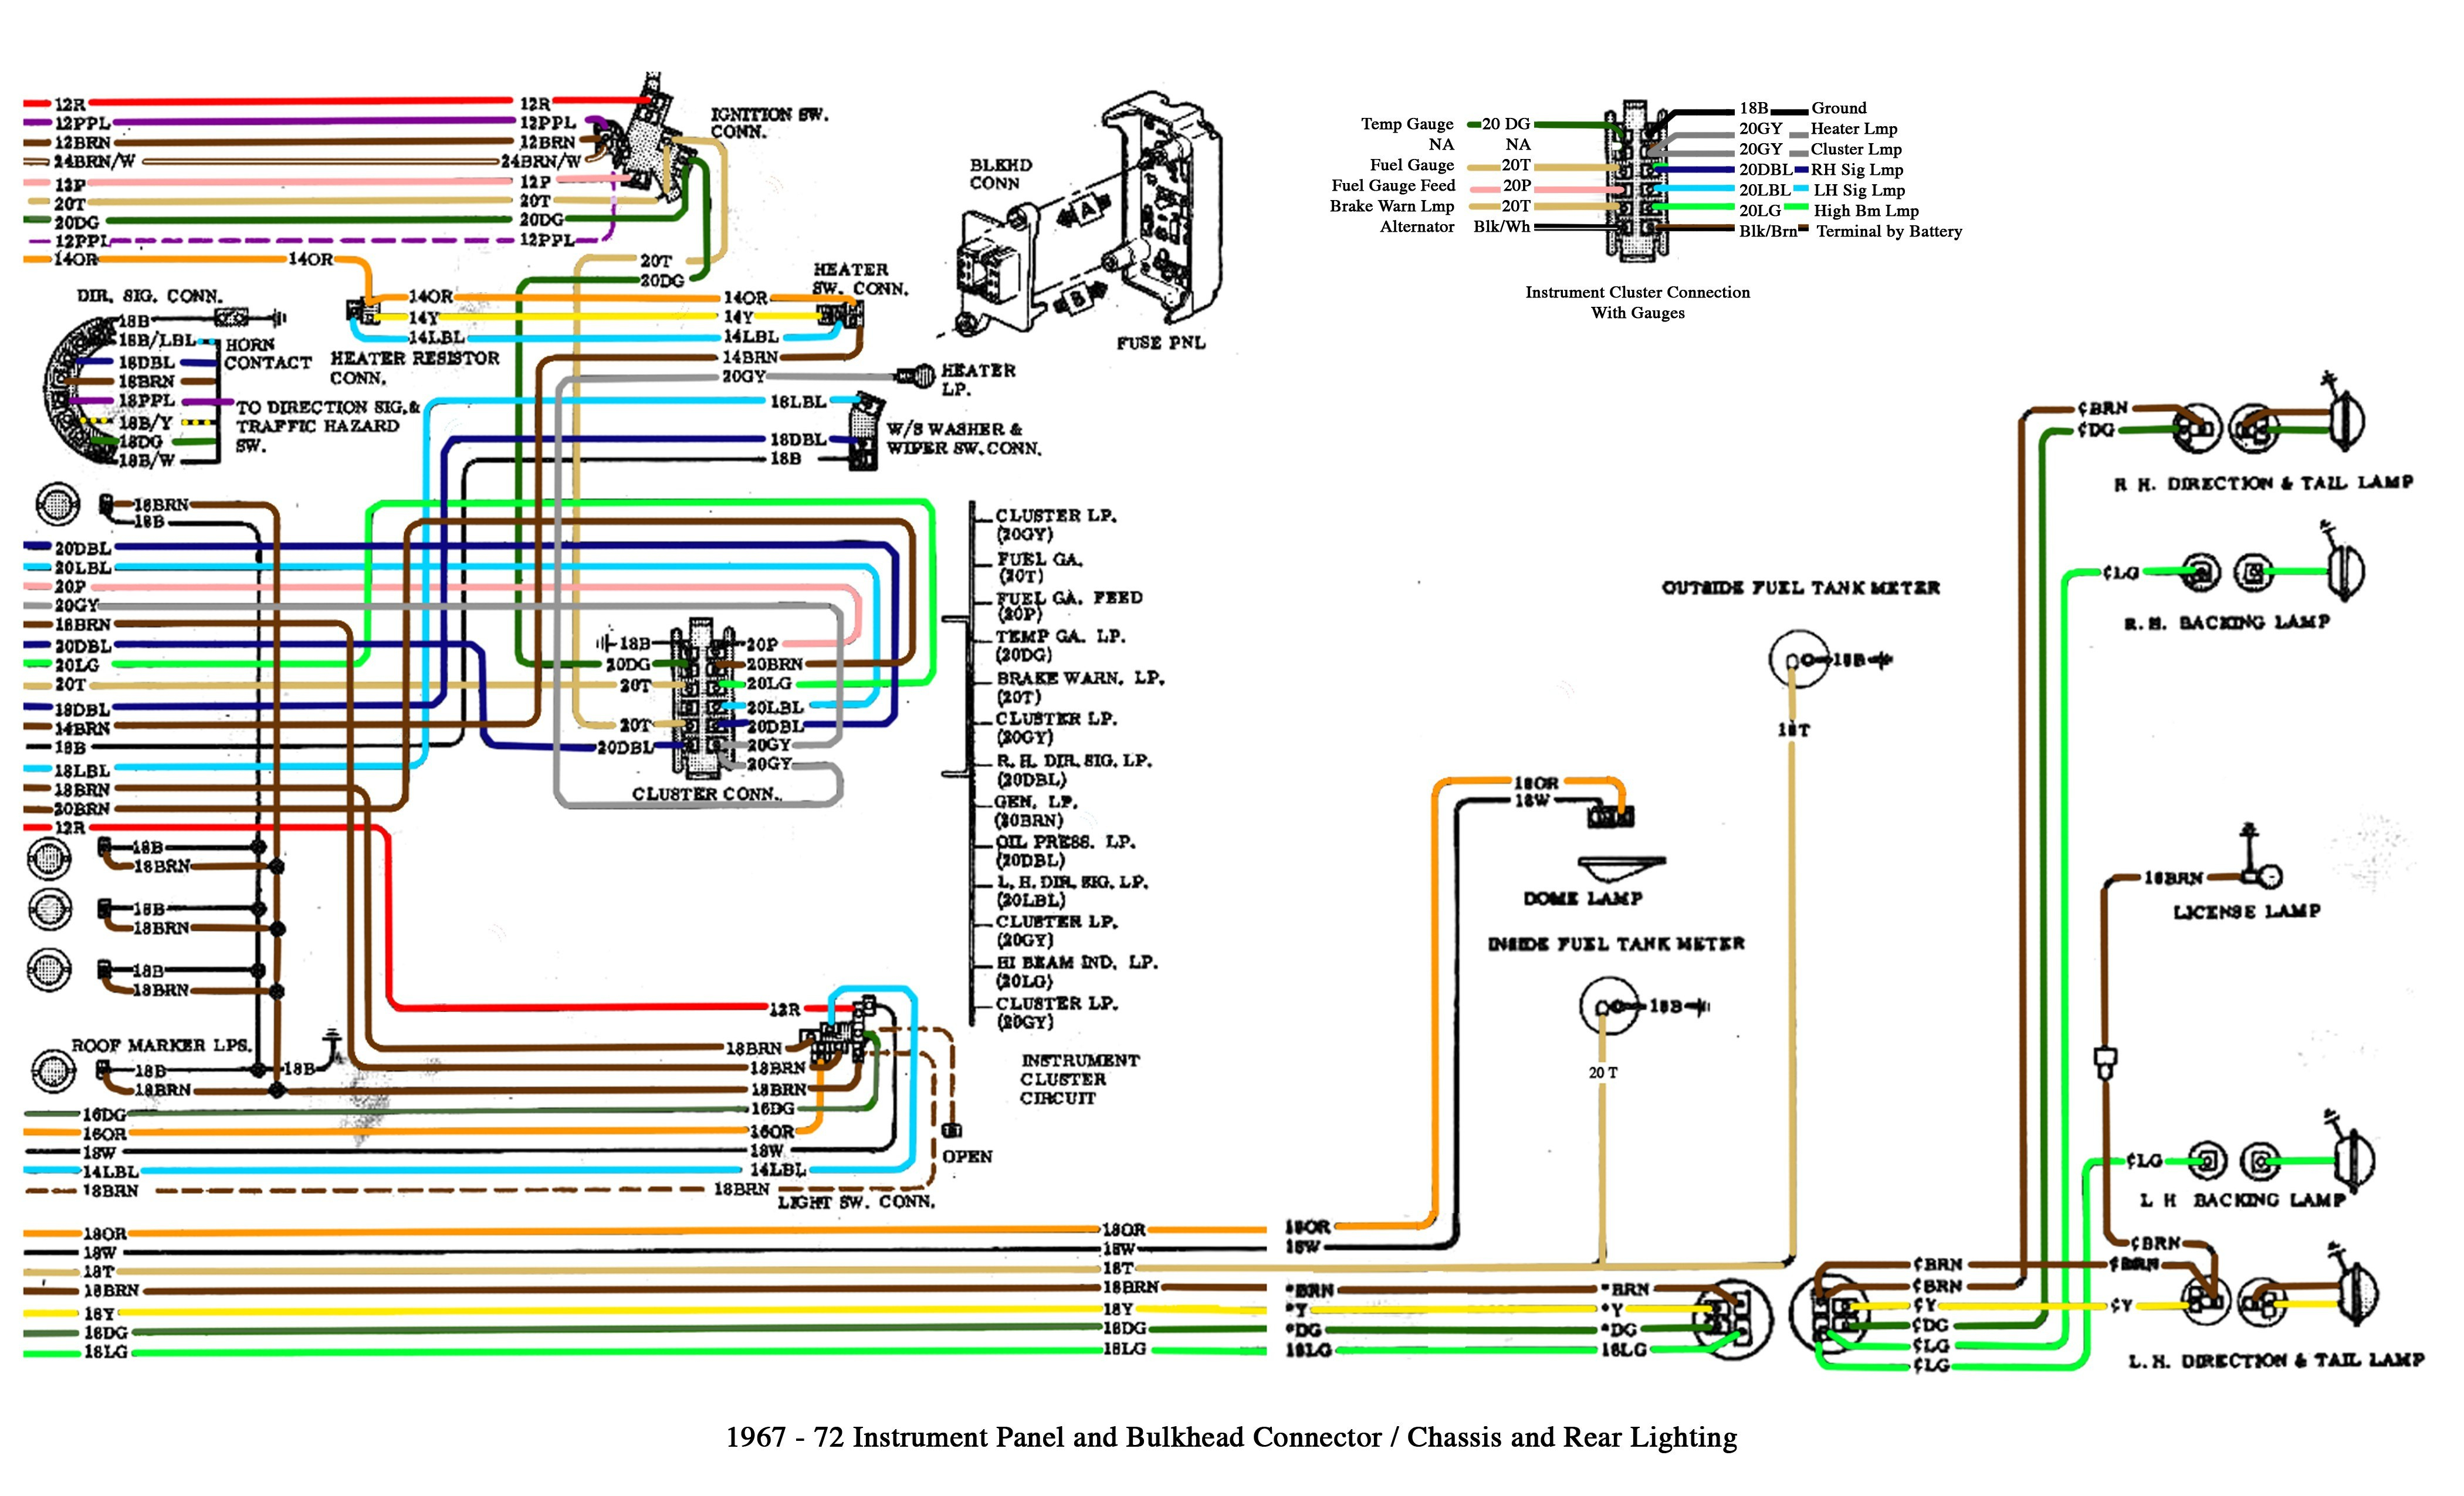 Gmc Tail Light Wiring Harness | Wiring Library - 2005 Chevy Silverado Tail Light Wiring Diagram